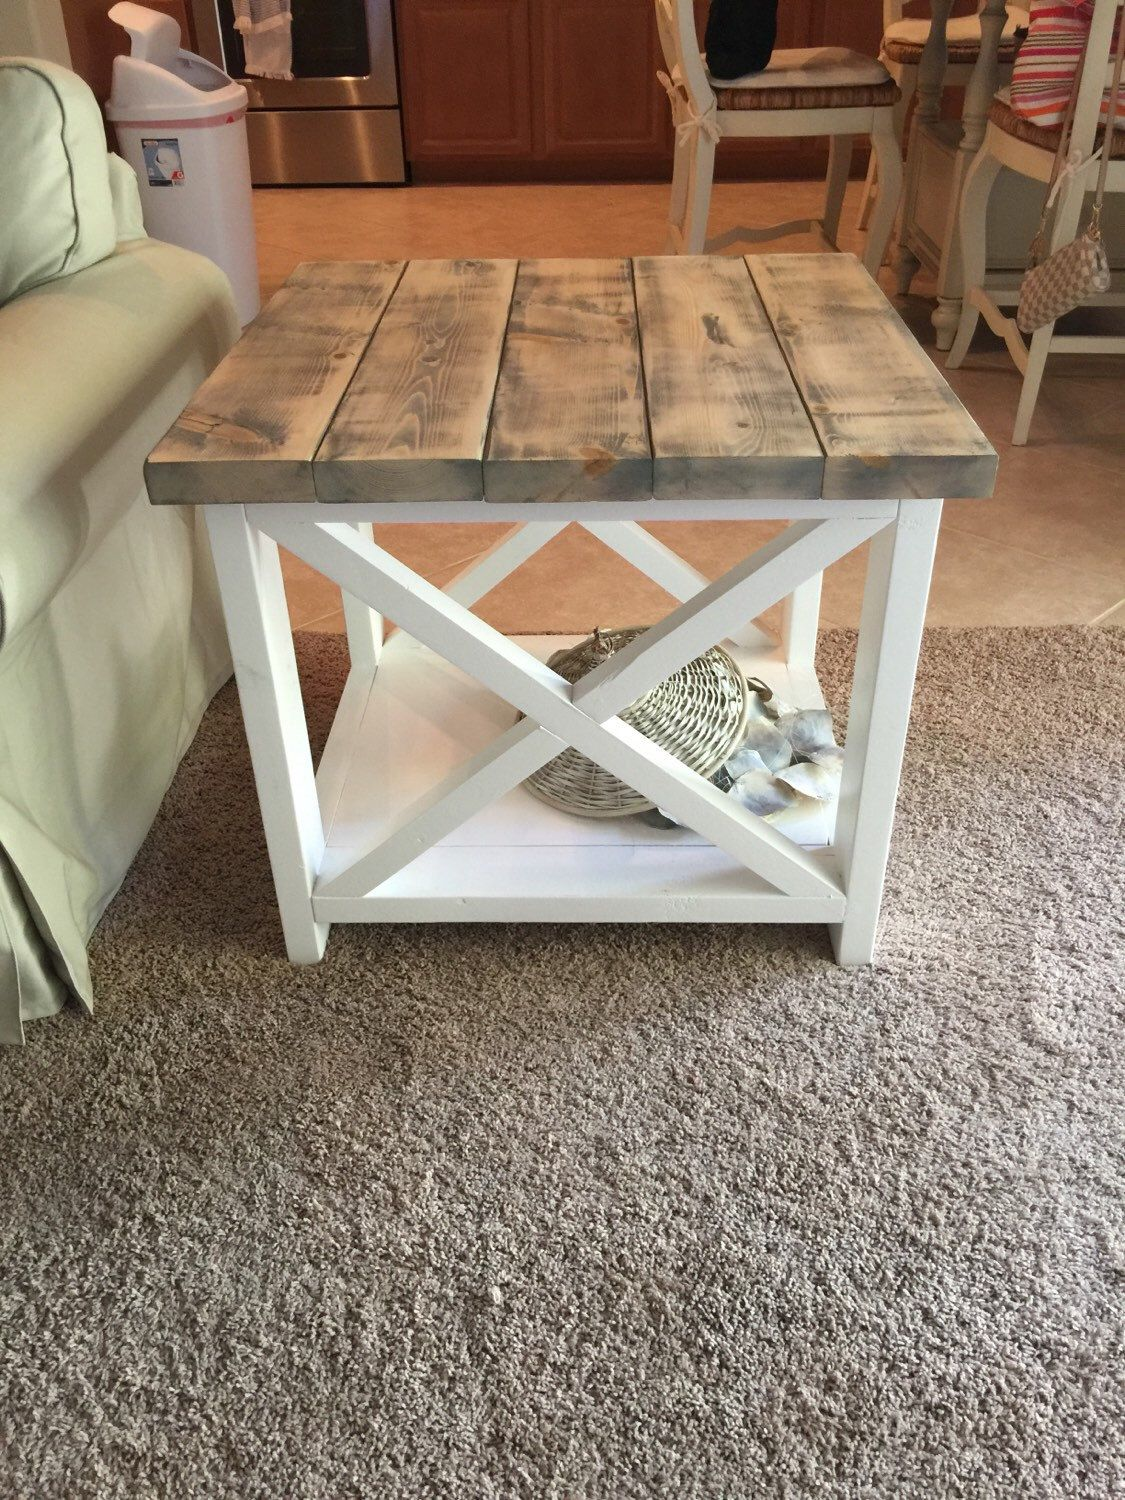 custom rustic farmhouse end table thewoodmarket etsy country white tables listing furniture for small spaces modern accent oblong tablecloth sizes bedroom lamp shades and leather